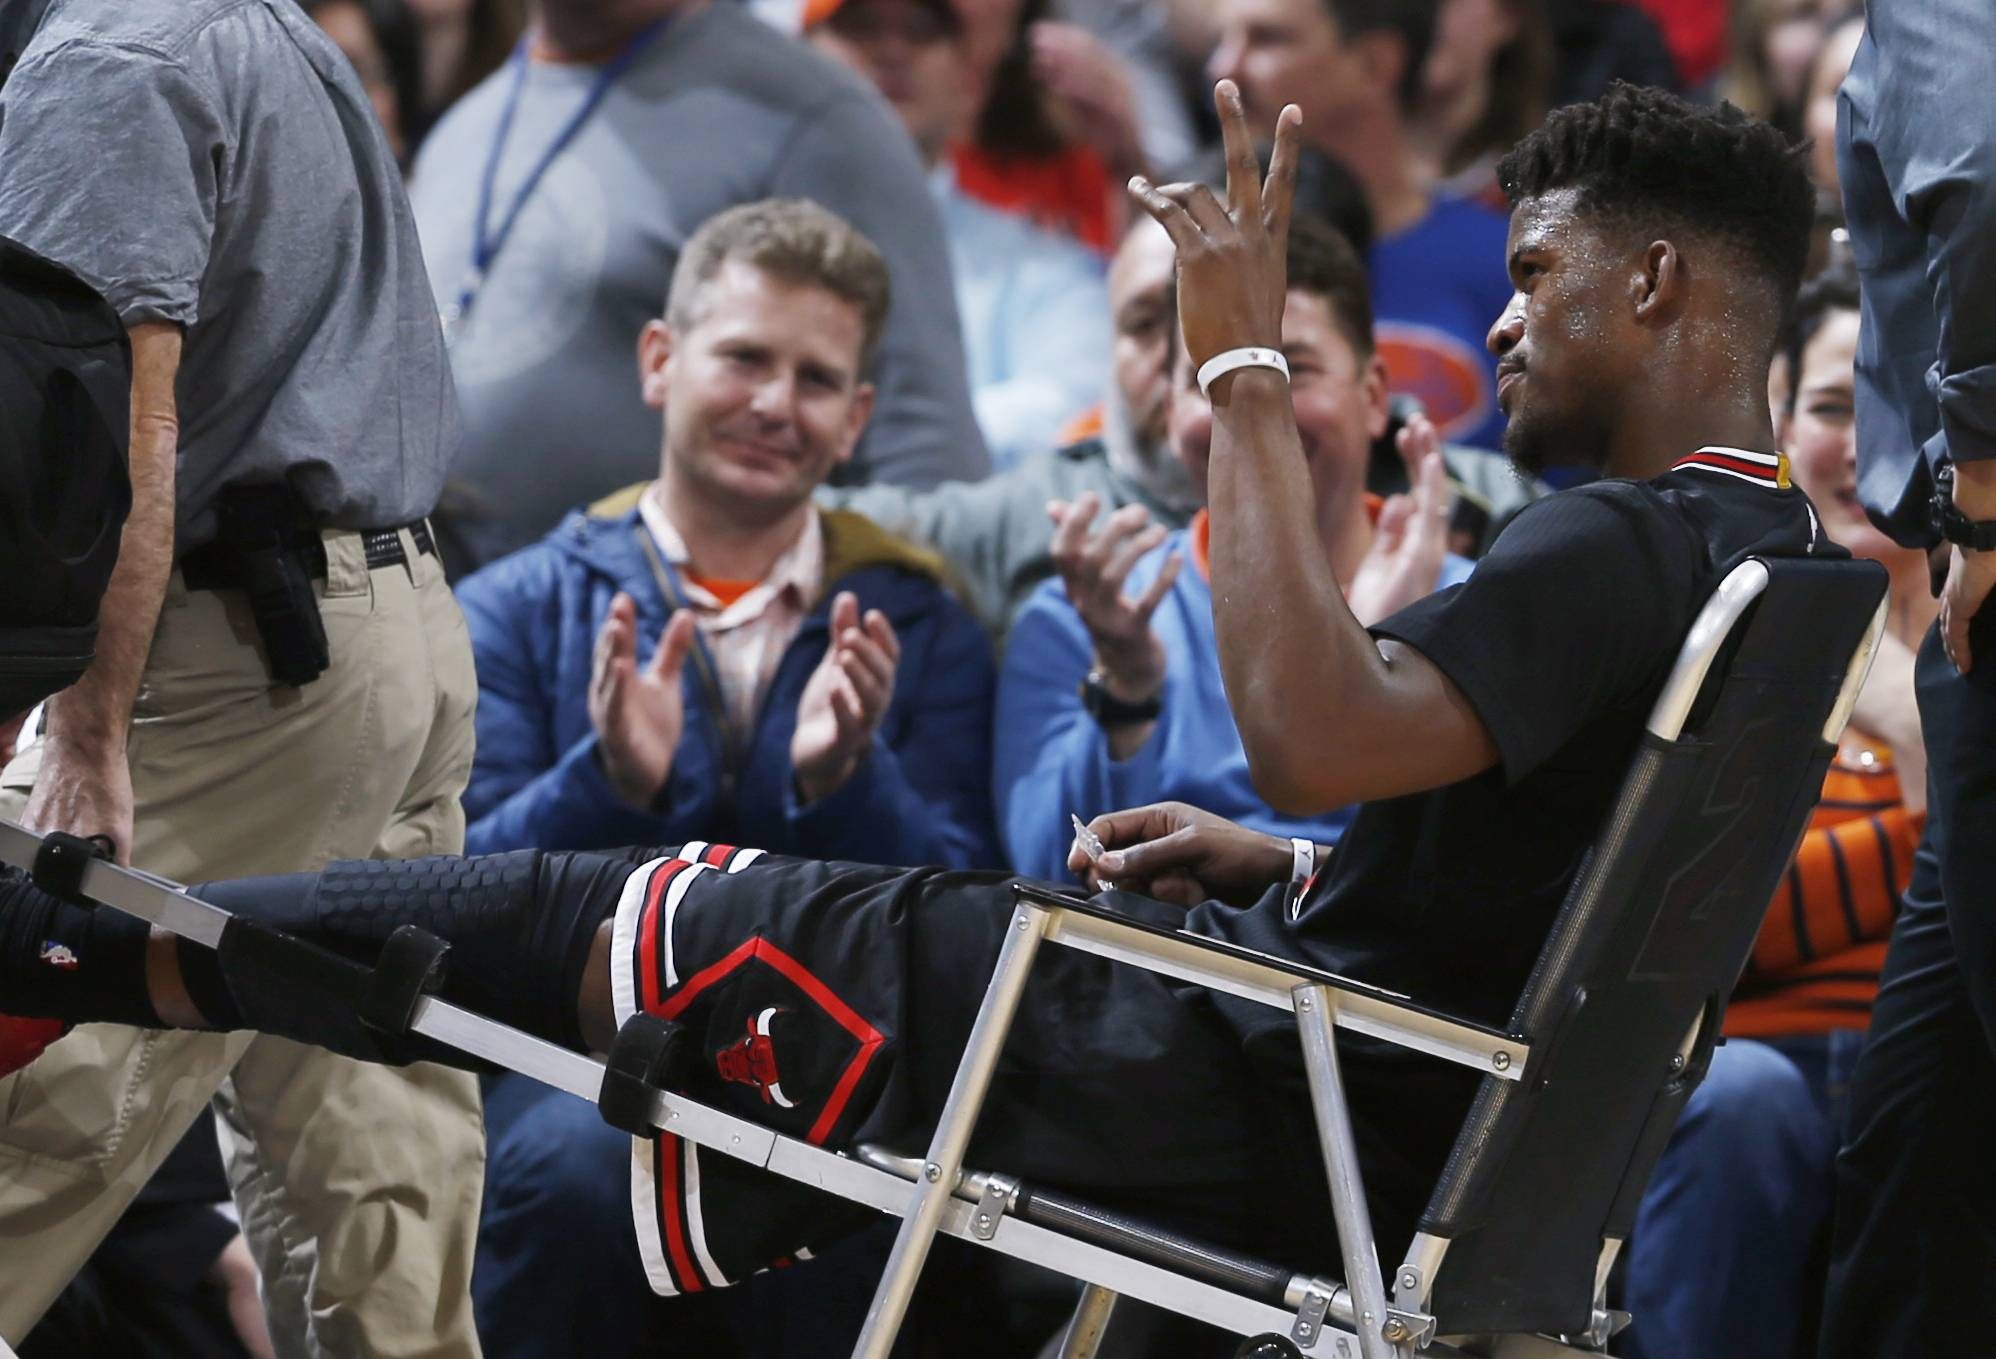 Chicago Bulls guard Jimmy Butler waves to fans Friday as he is taken off the court after being injured late in the first half against the Denver Nuggets. The knee injury will keep Butler out of the all-star game.